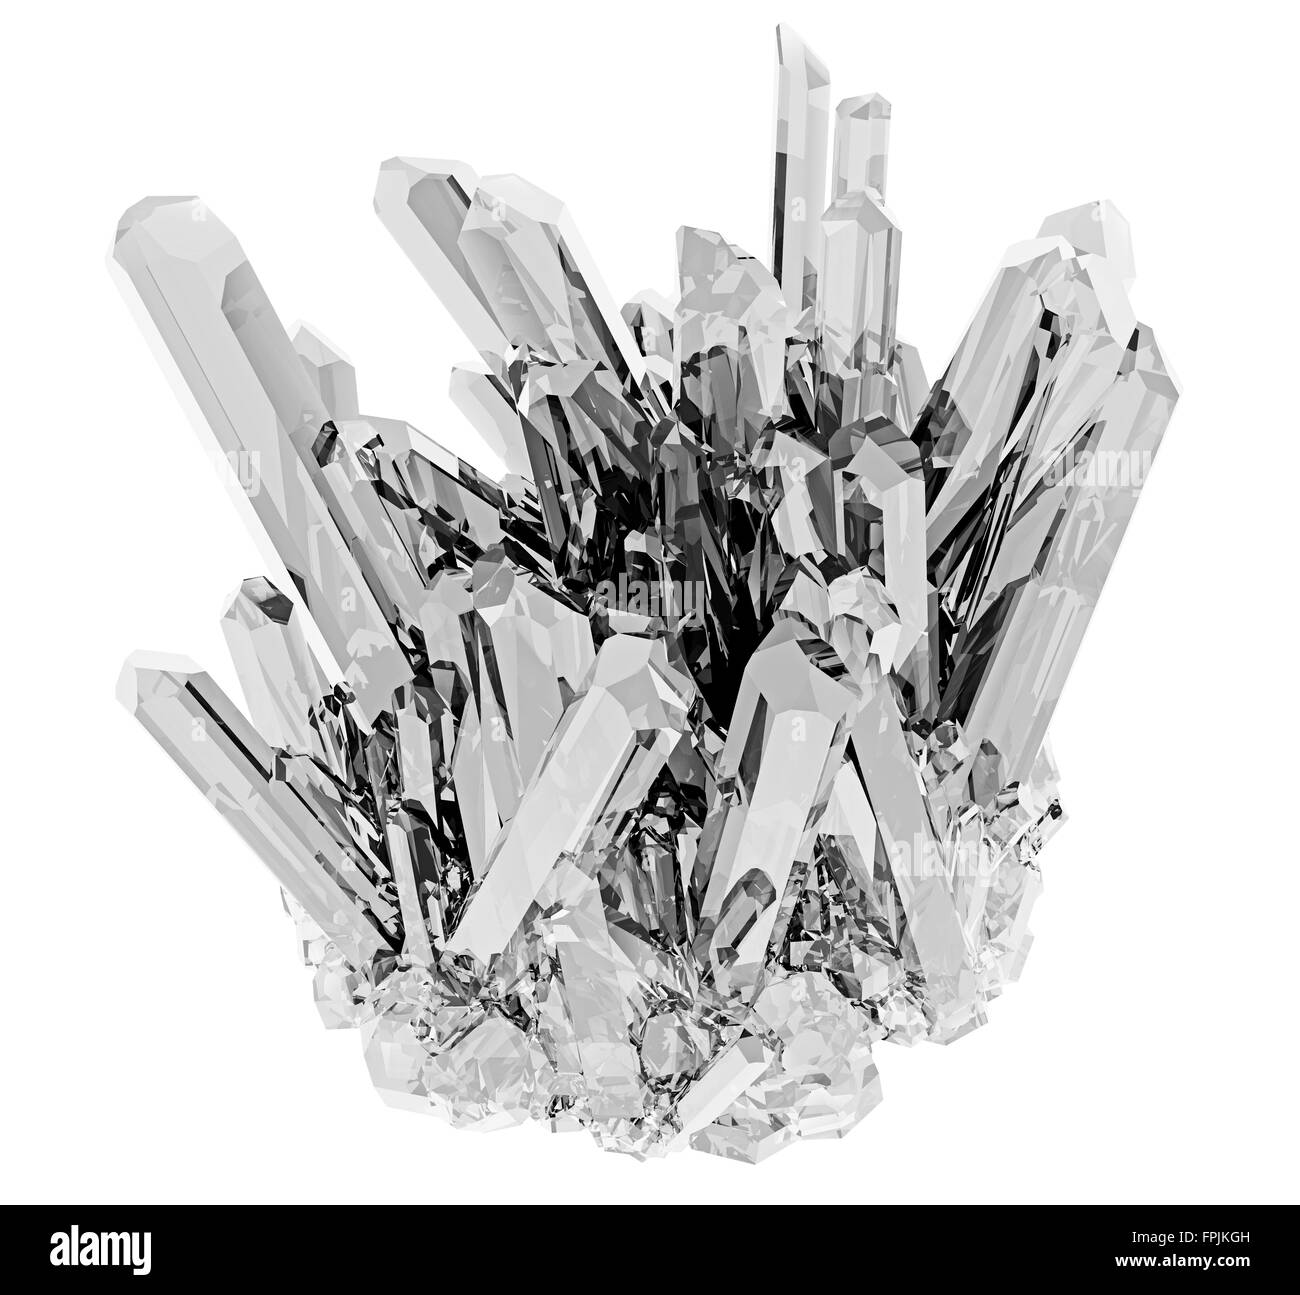 Crystal on a white background isolated - Stock Image